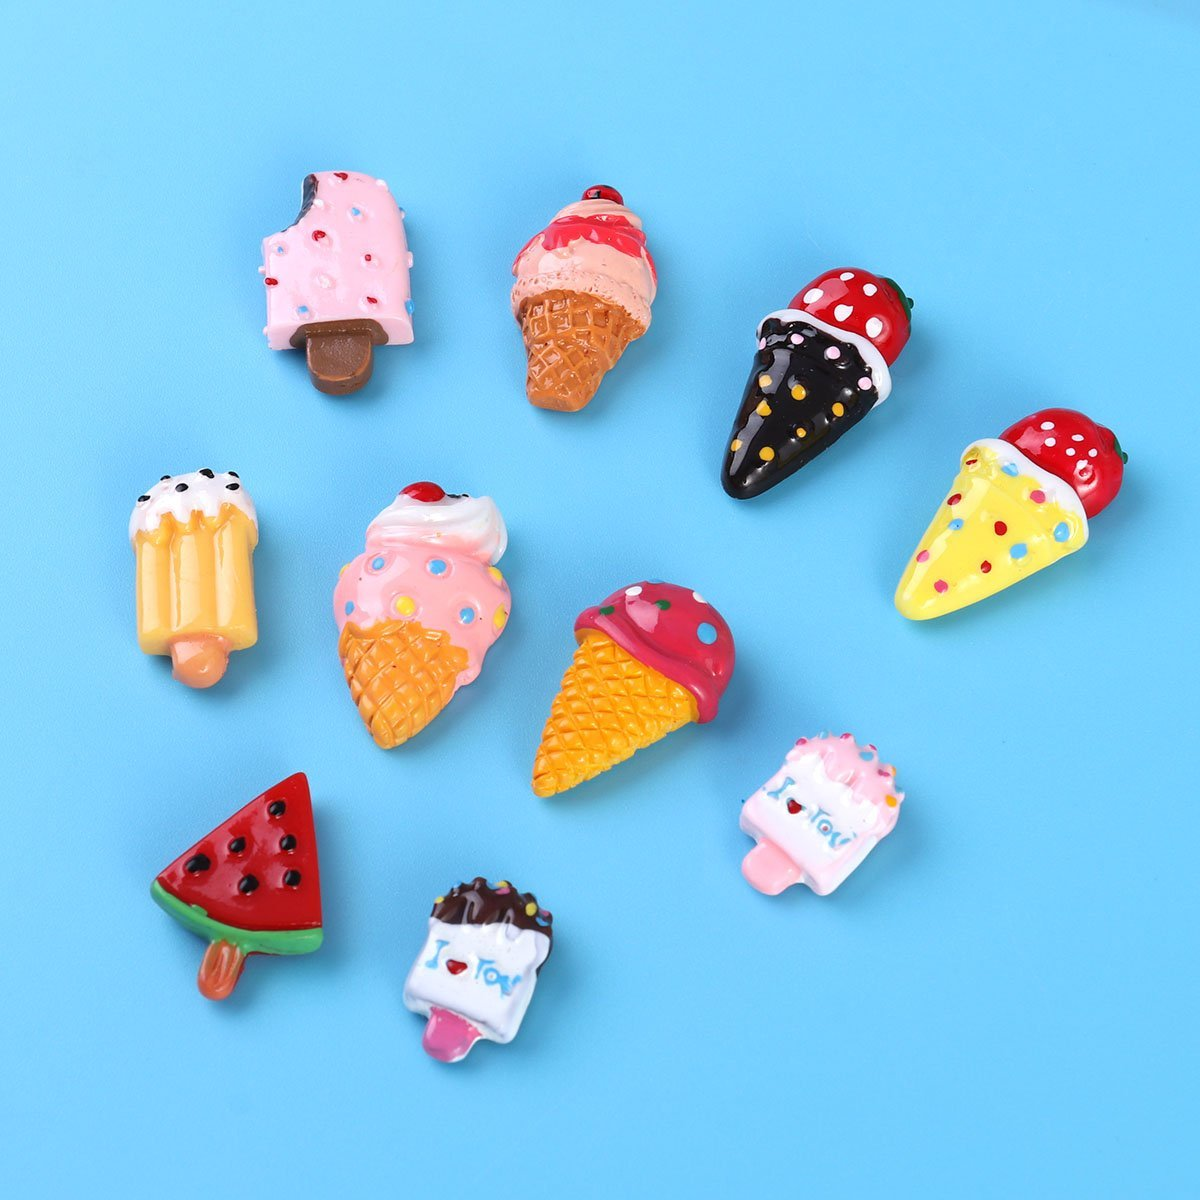 OUNONA Magnetic Dessert Fridge Magnet Sticker Ice Cream Refrigerator Magnets for Kitchen Office Cabinets Whiteboard Decor